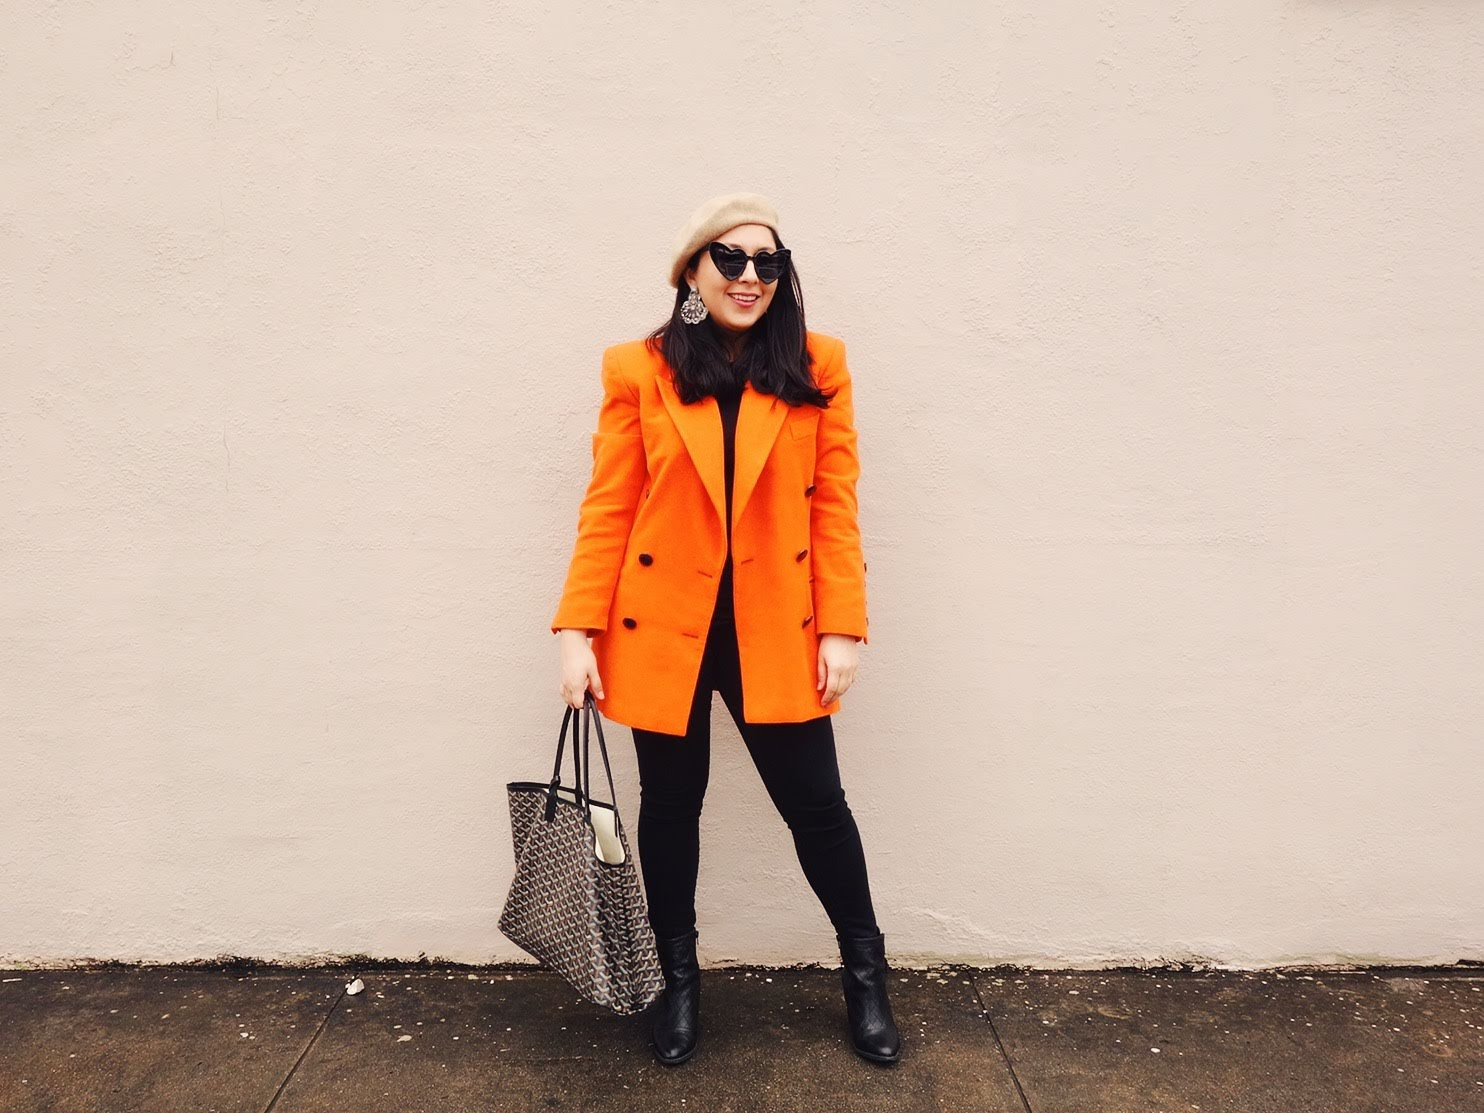 Orange Jacket, Orange Blazer Outfit, Orange and Black Outfit, Escada Blazer, Escada Vintage